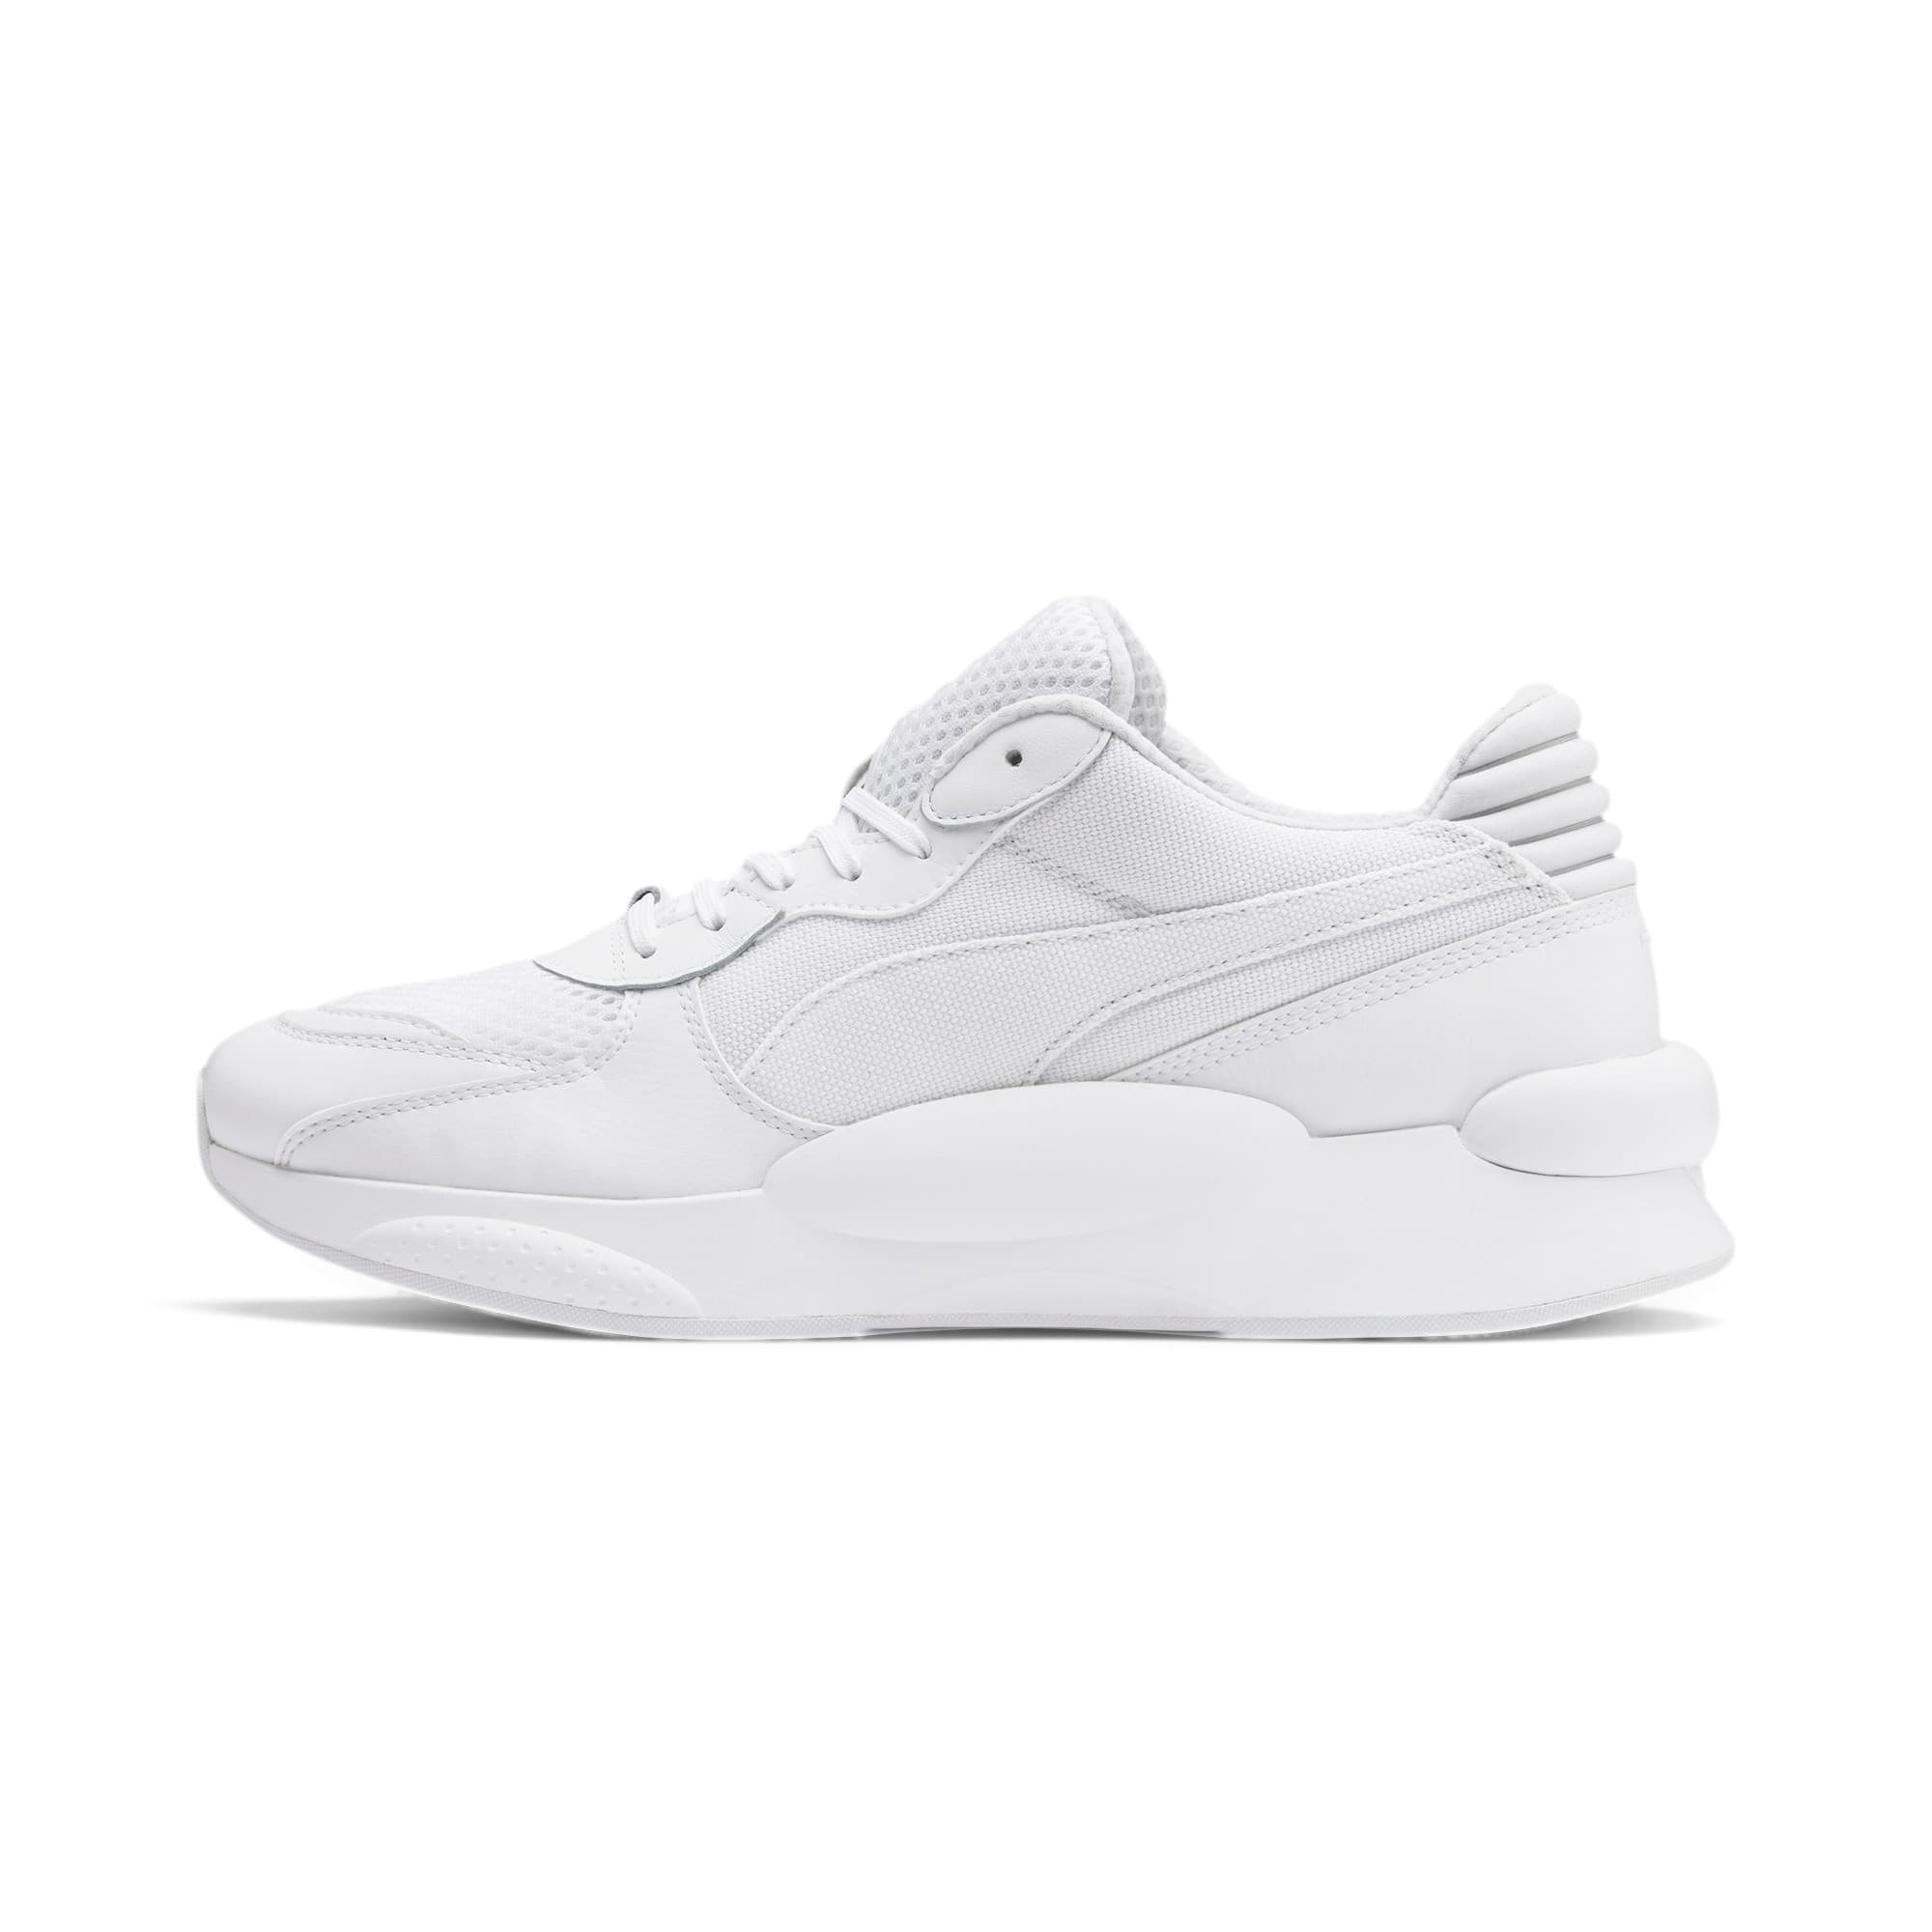 RS 9.8 Core Sneakers, Puma White, large